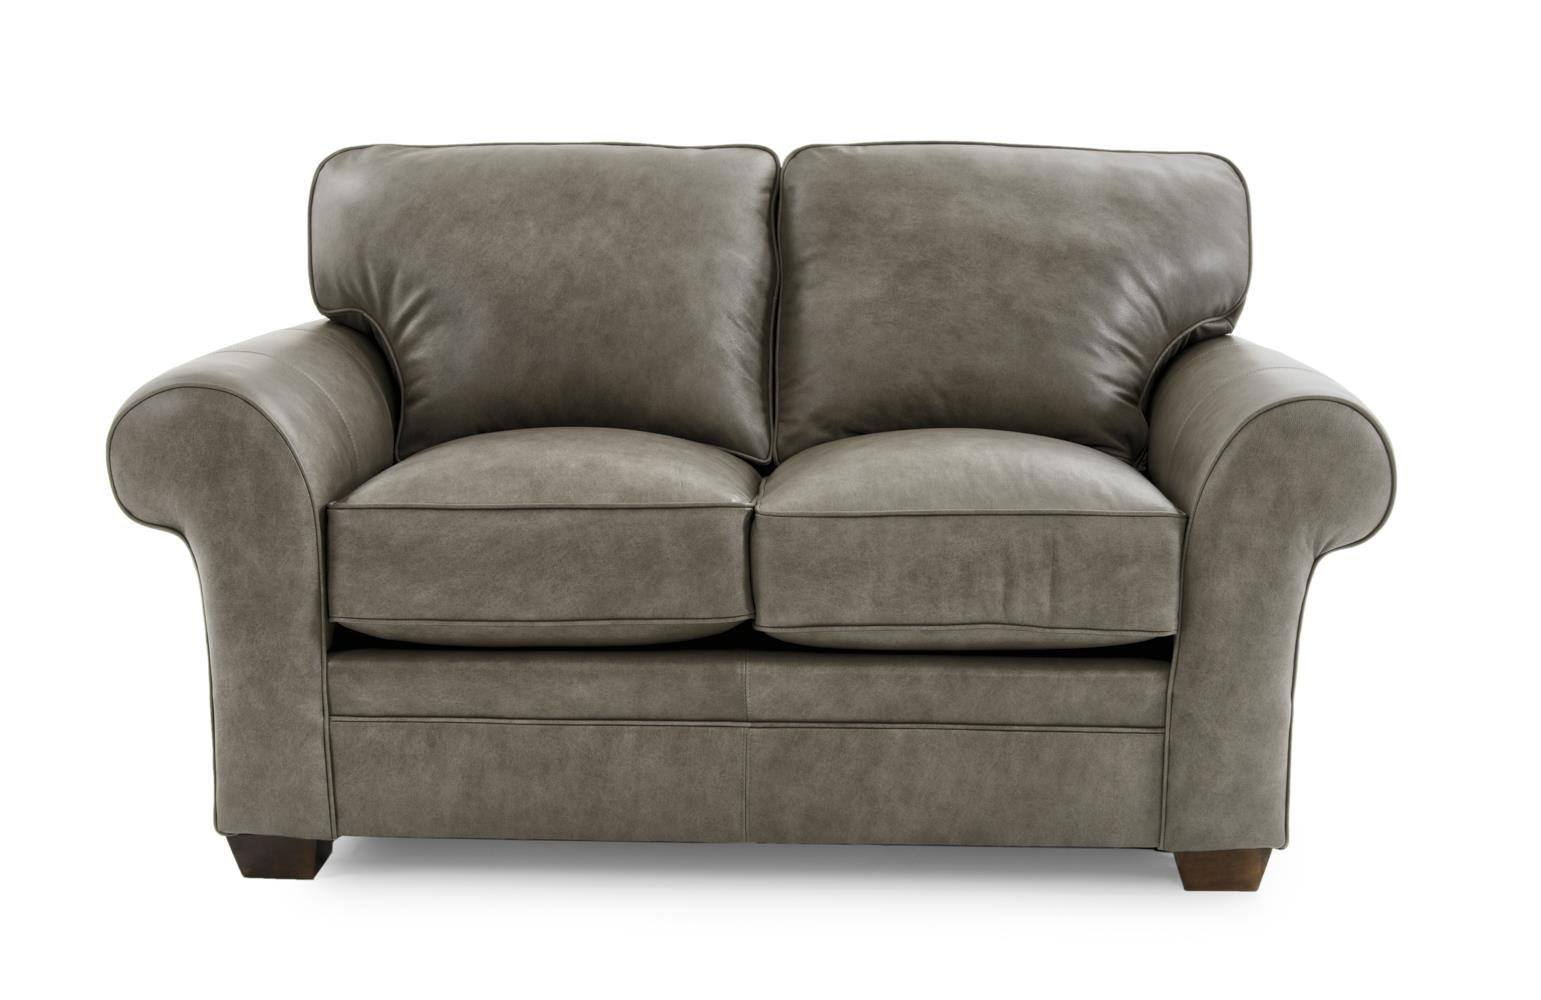 Broyhill Furniture Zachary Loveseat - Item Number: L7902-1 0016-5